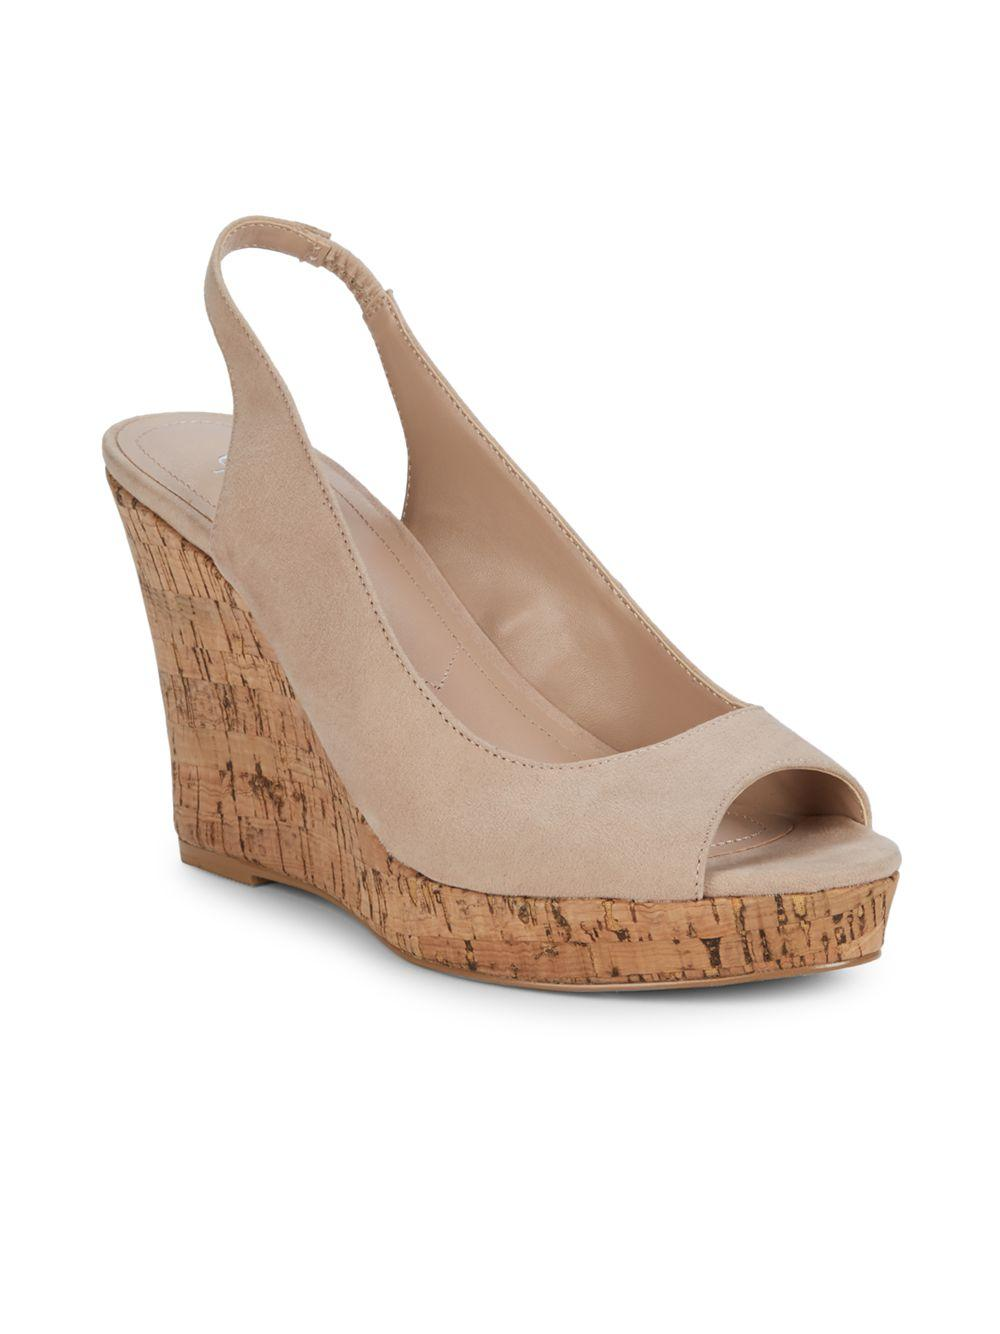 a63b3882e6d Lyst - Charles David Leandra Slingback Wedge Sandals in Natural ...